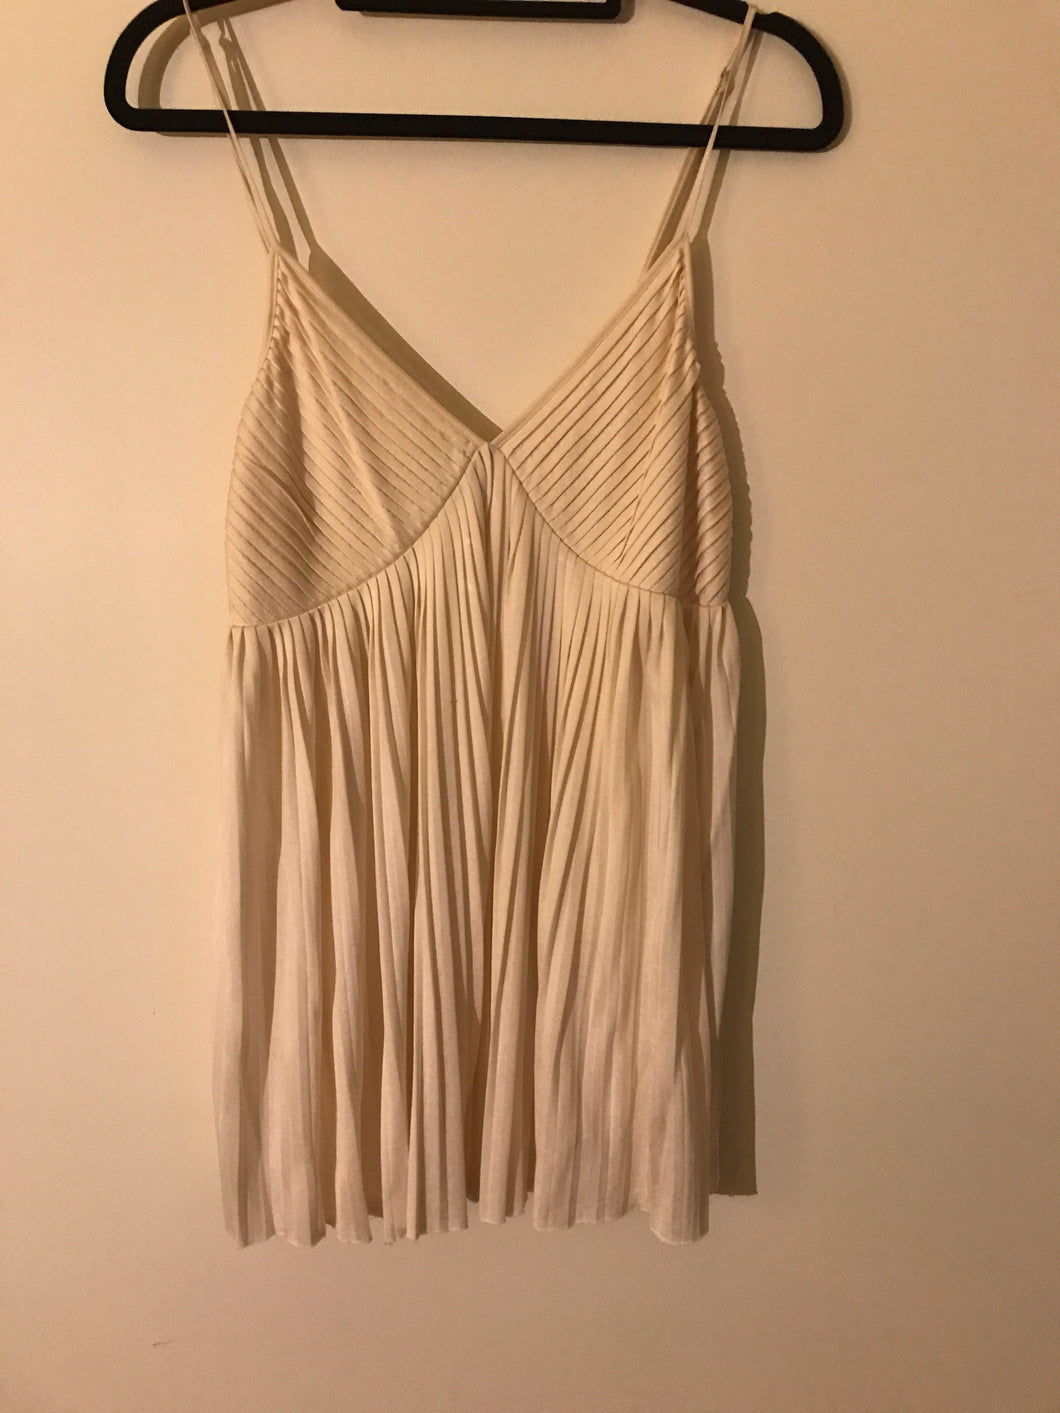 Witchery pure silk off white swing top Size M (10)